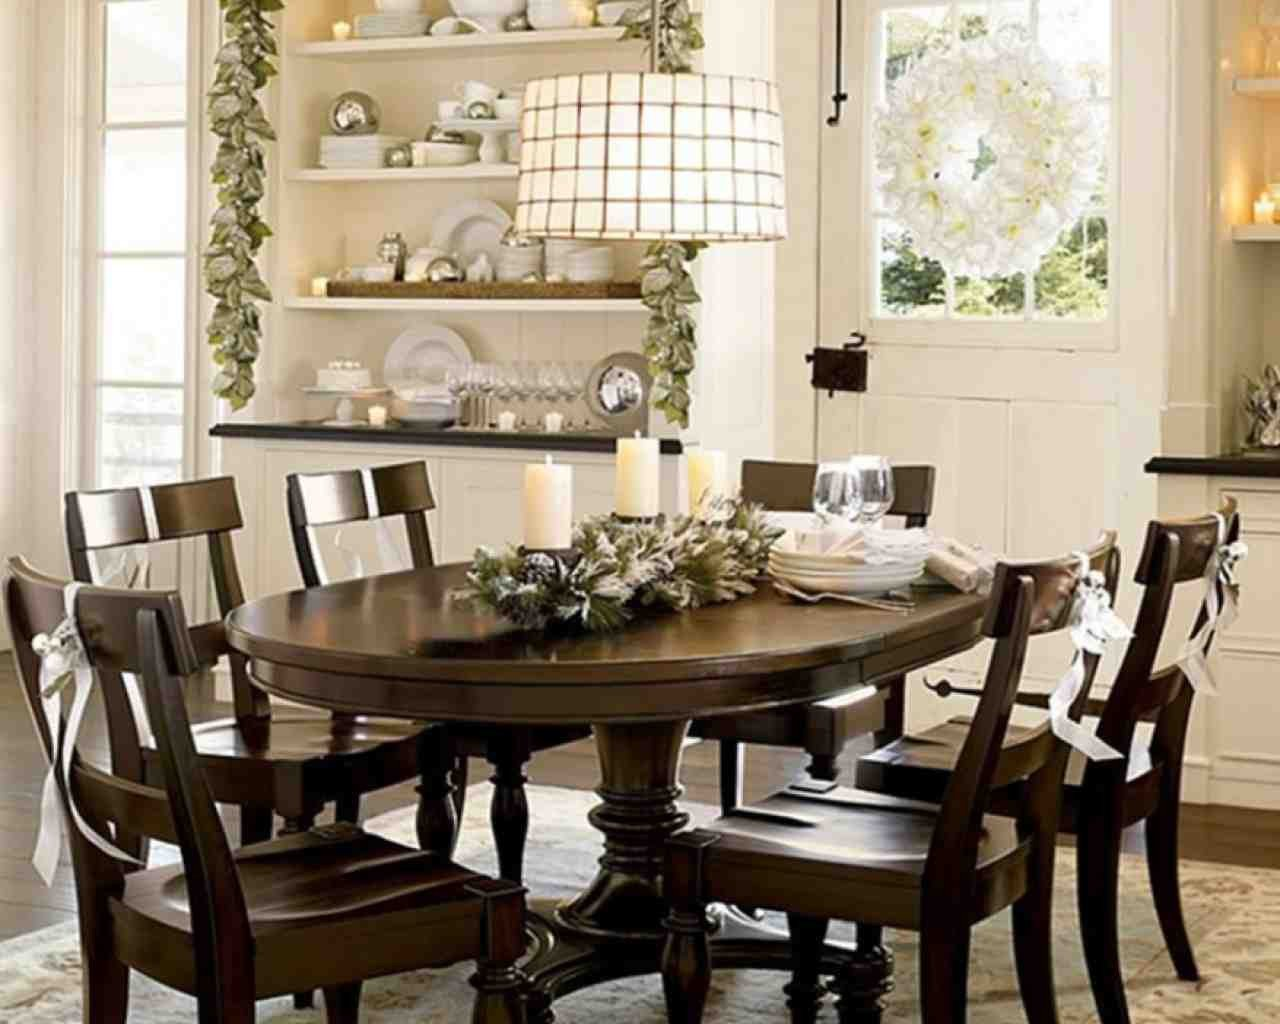 Room Decor On A Budget Fresh Dining Room Decorating Ideas On A Bud Decor Ideasdecor Ideas